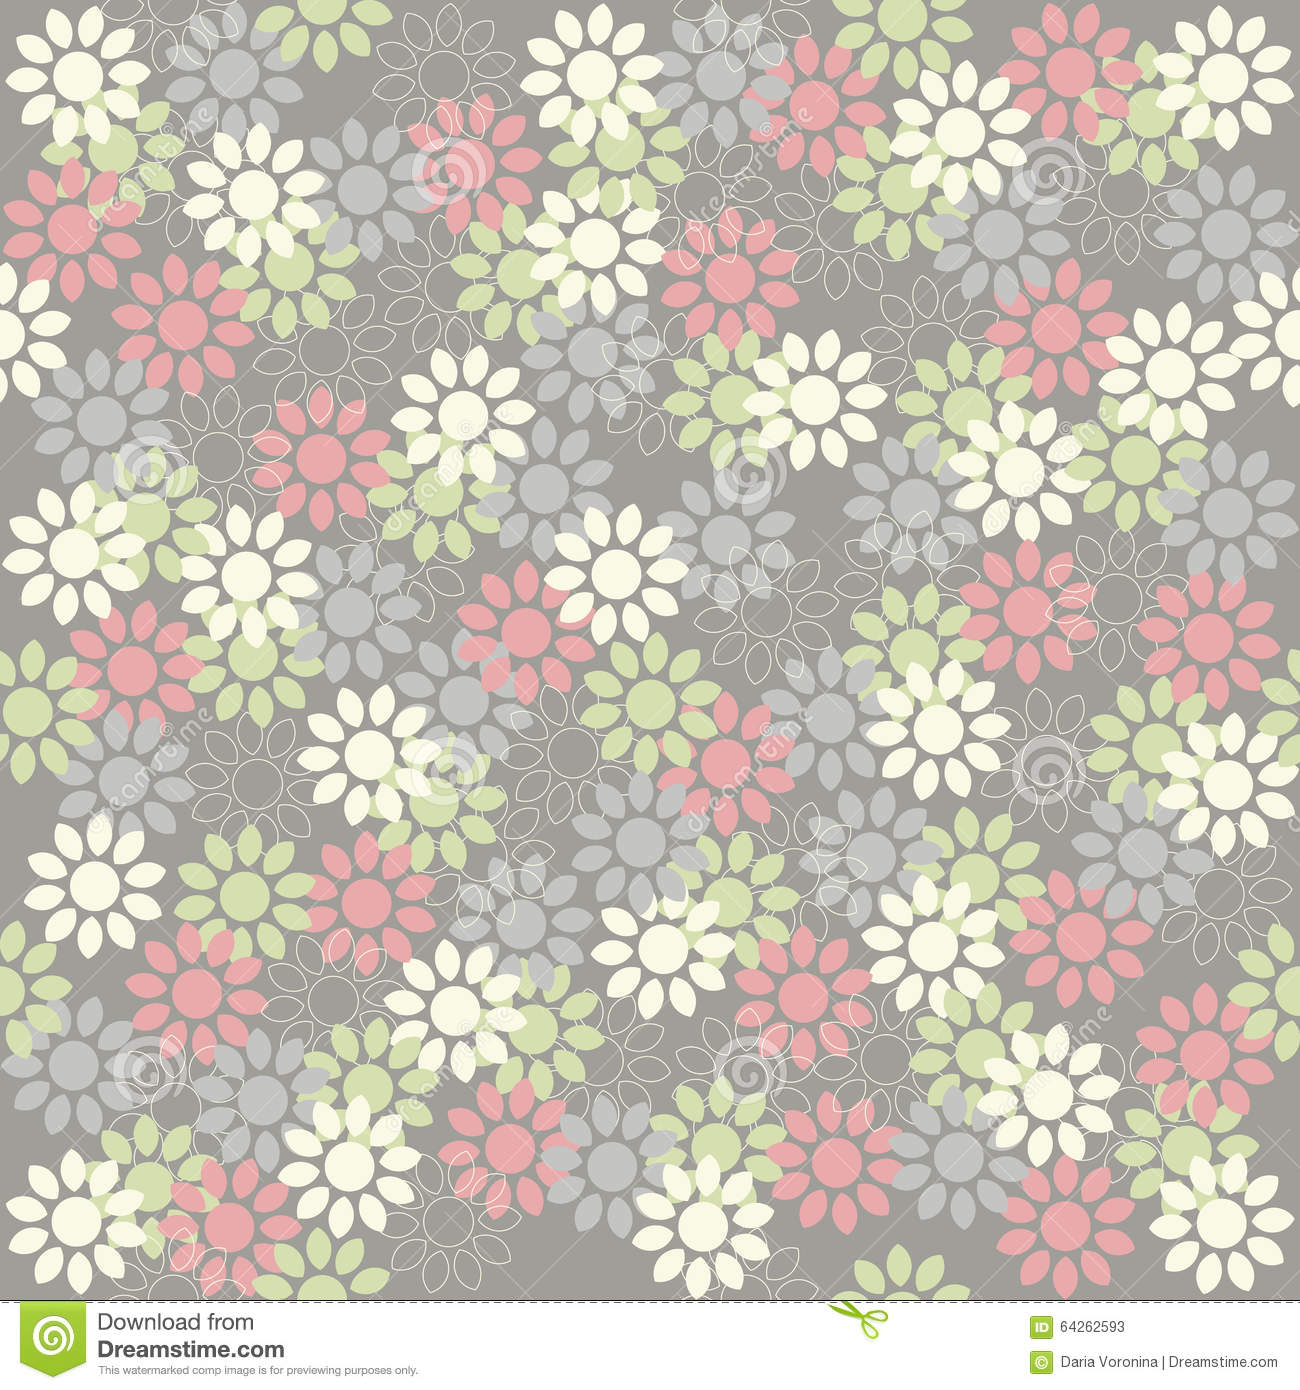 Trendy Wallpaper: Trendy Seamless Pattern With Cute Flowers Stock Vector